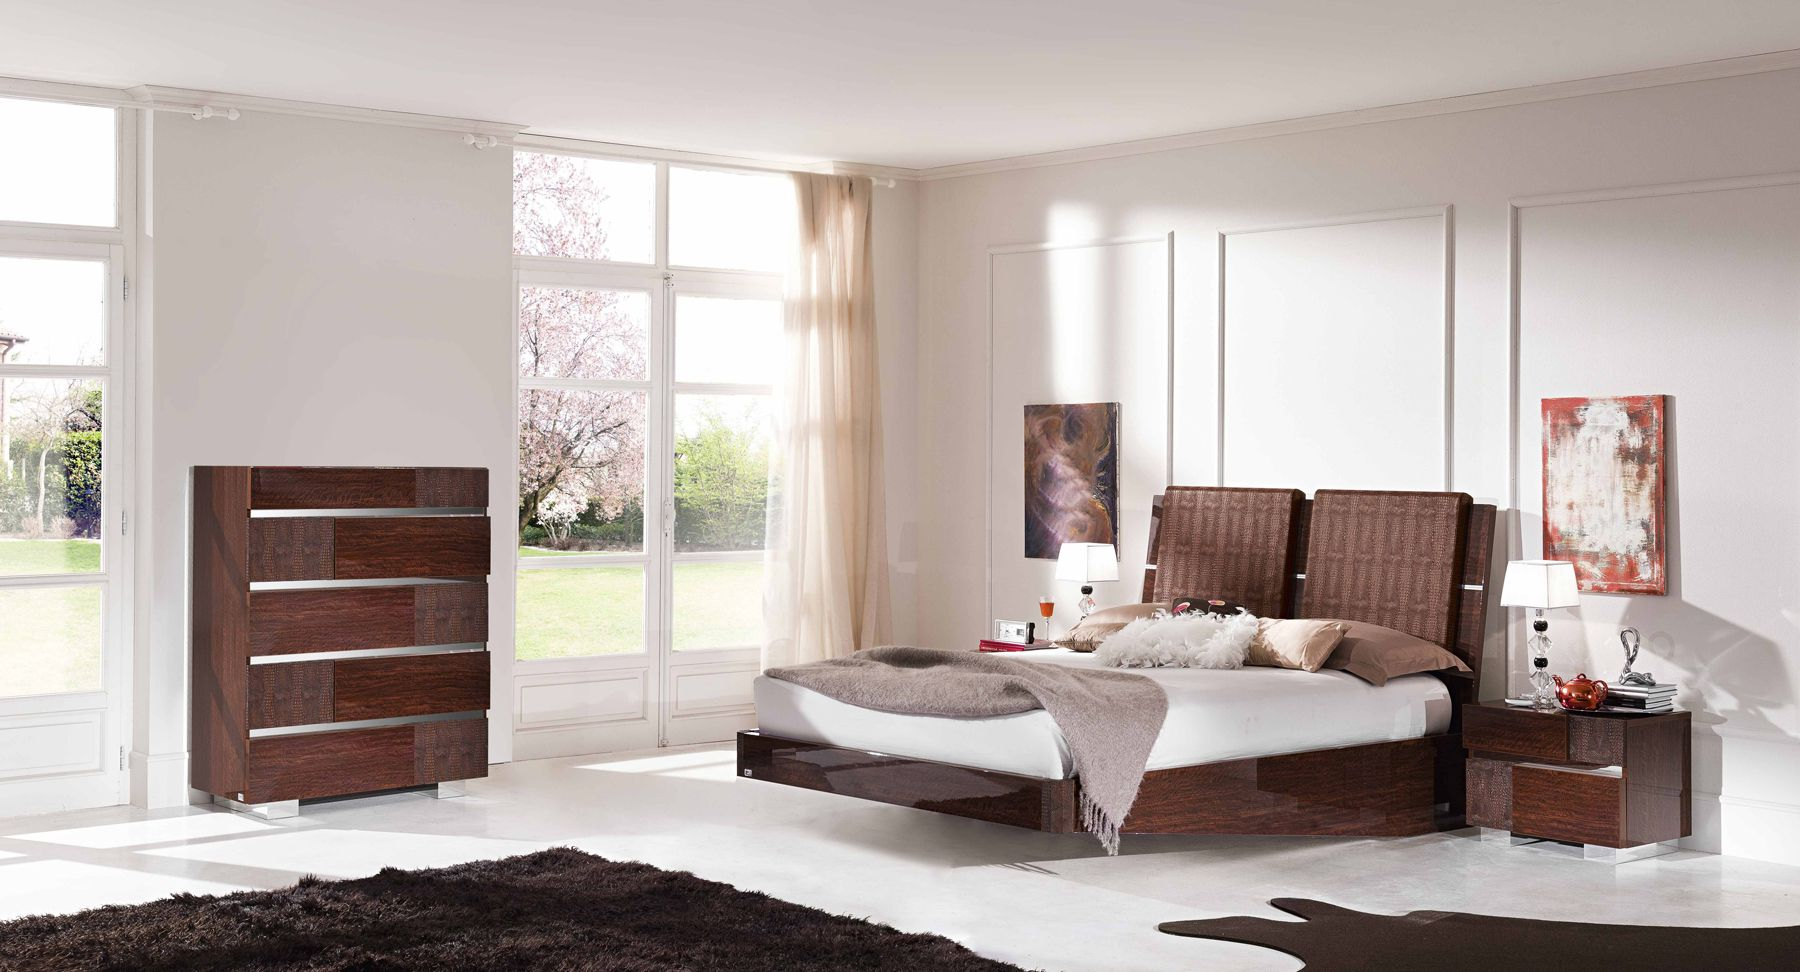 Bedroom design tips with modern furniture